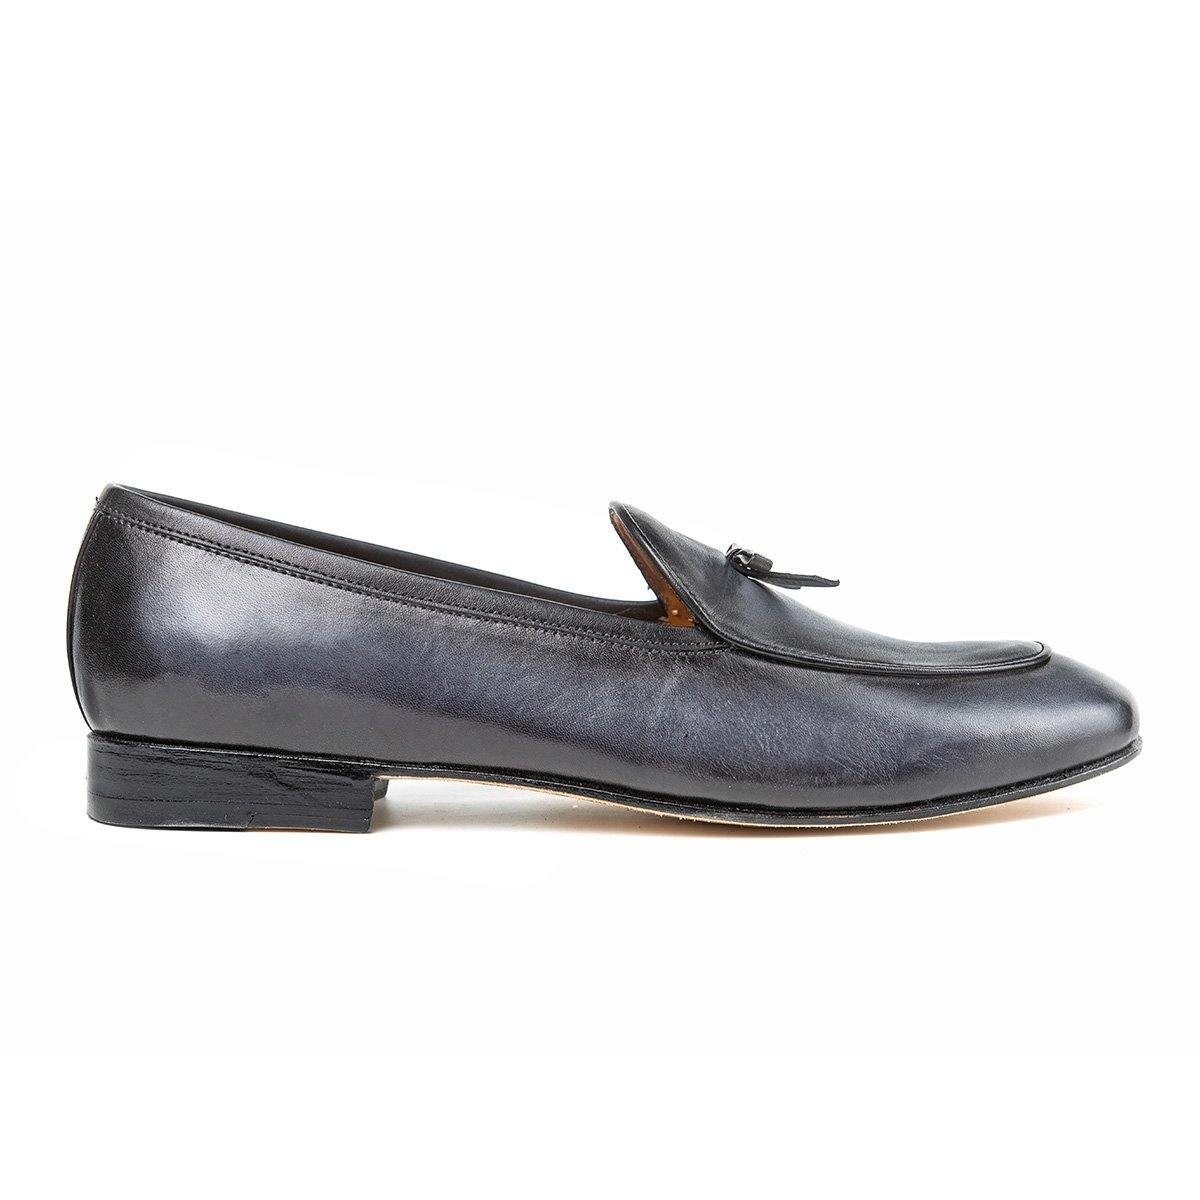 Mayfair - Belgian Loafers in Grey - TLC - The Leather Crafts